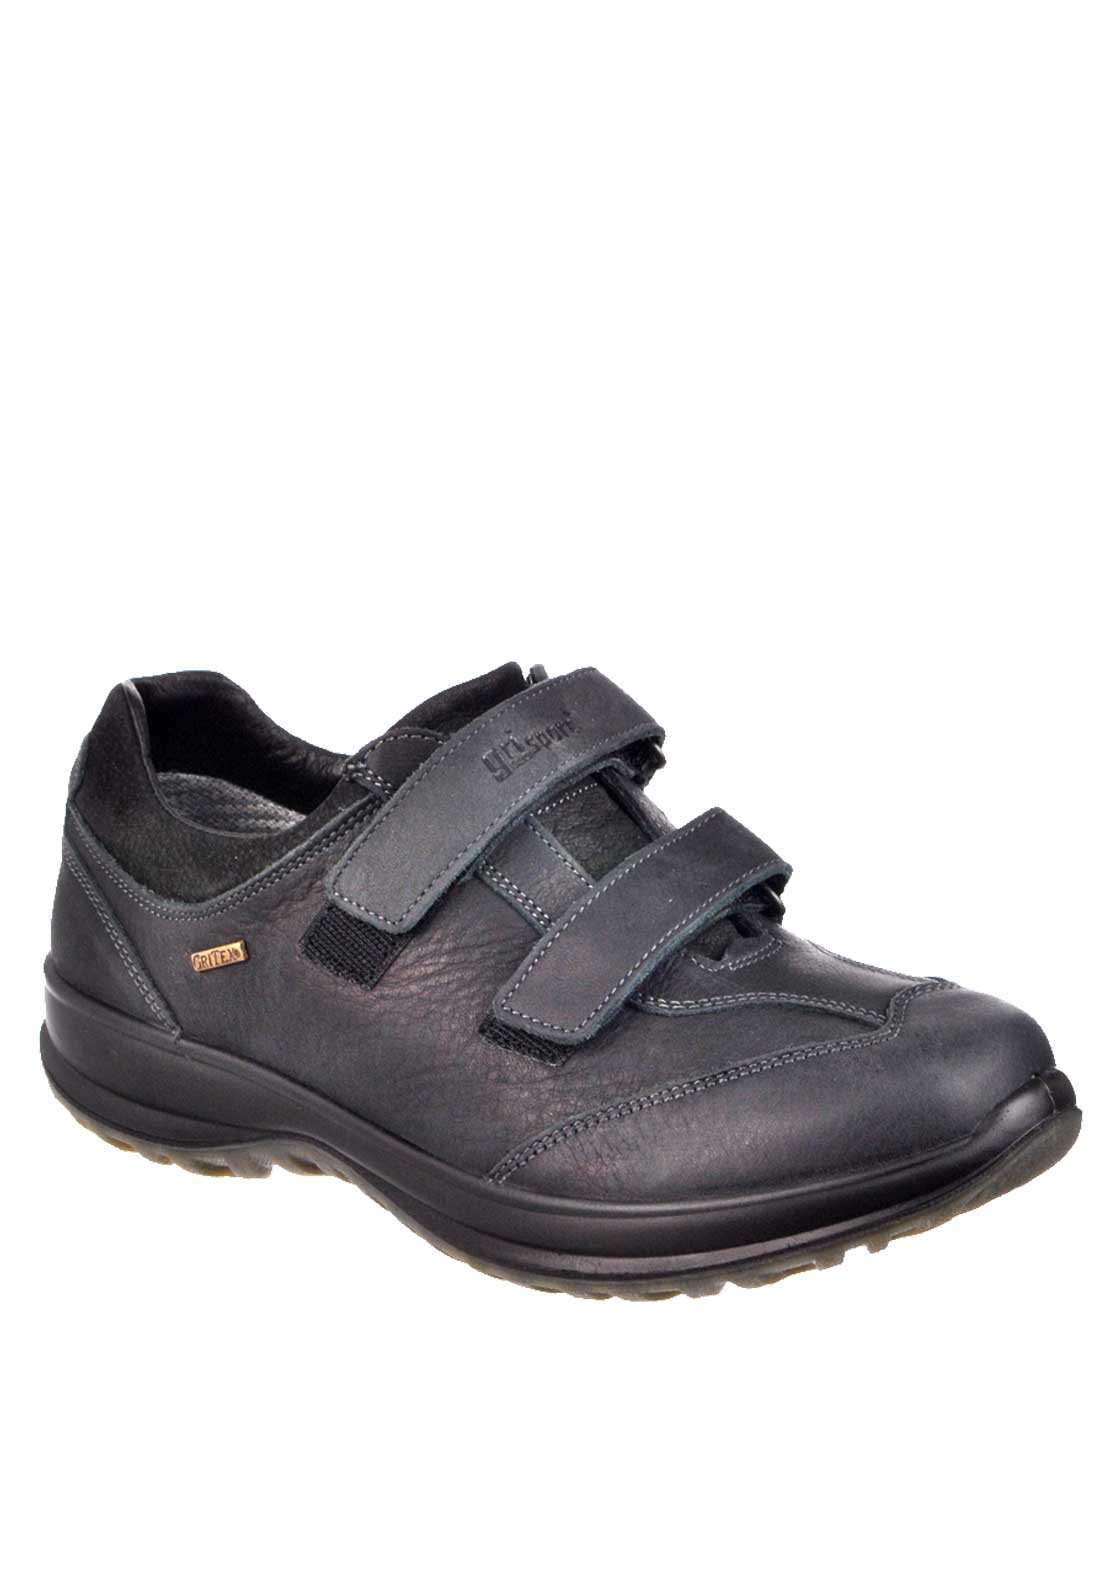 Grisport Lewis Velcro Strap Leather Walking Shoes, Black